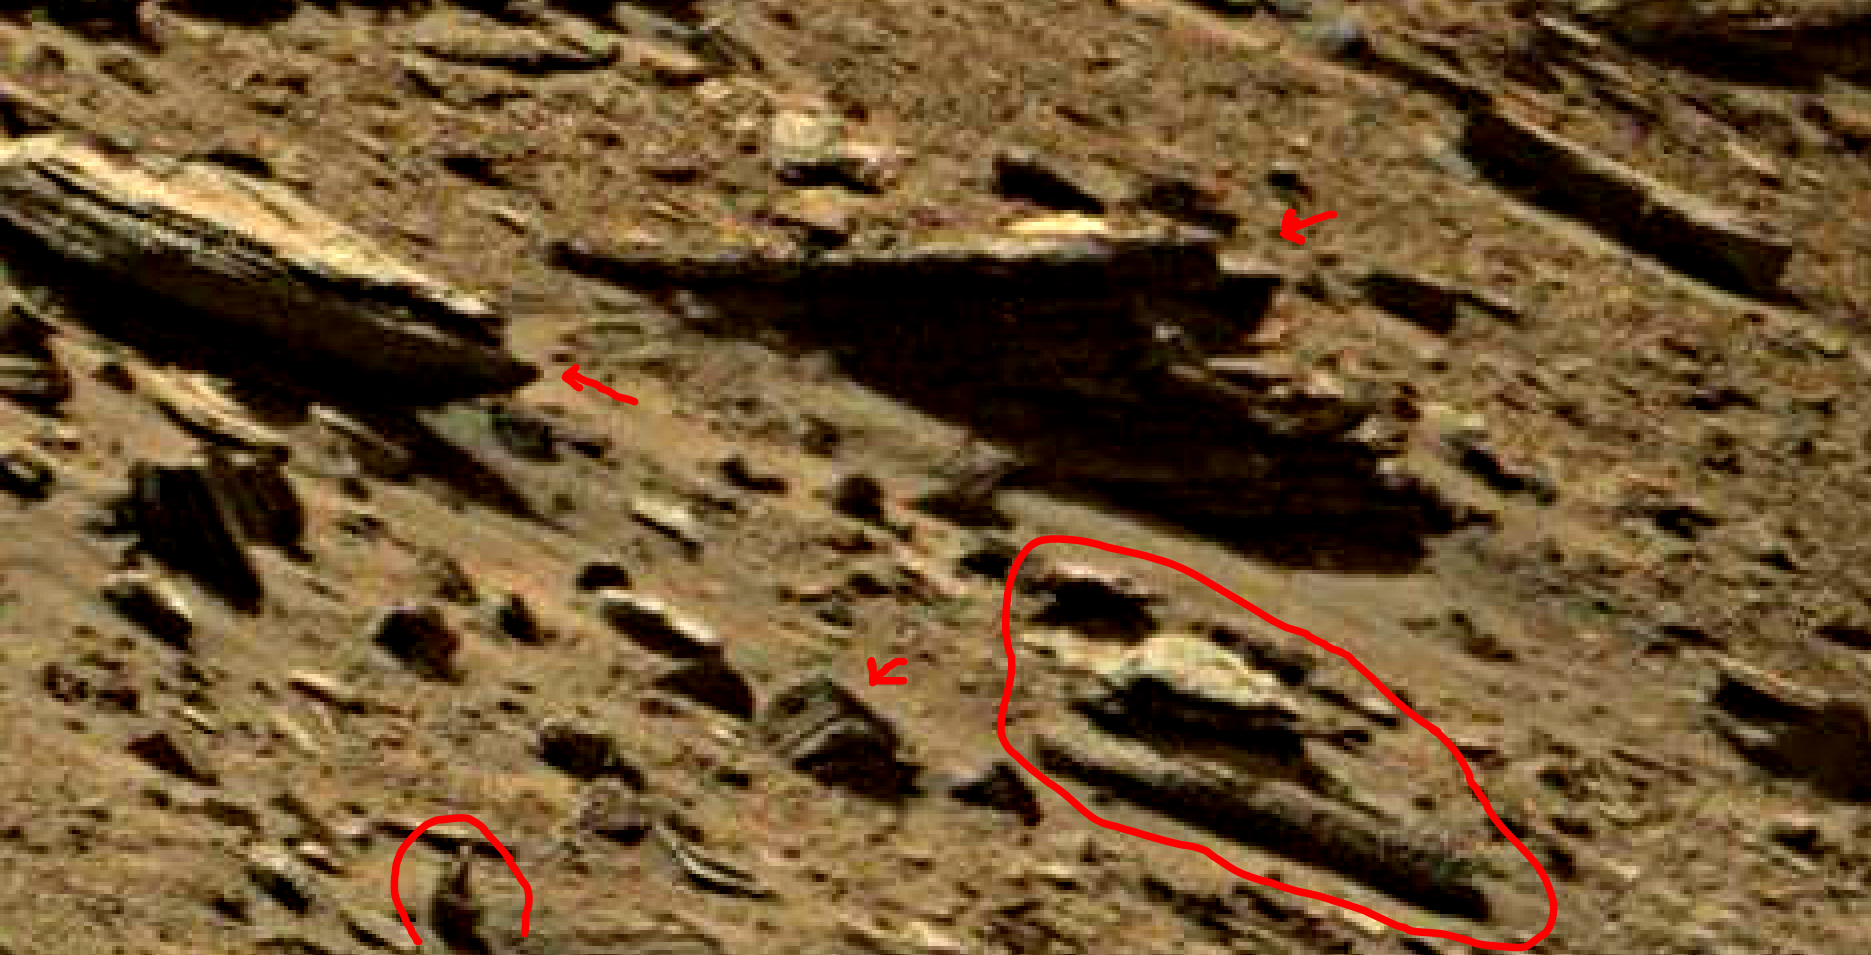 mars sol 1434 anomaly artifacts 4 was life on mars